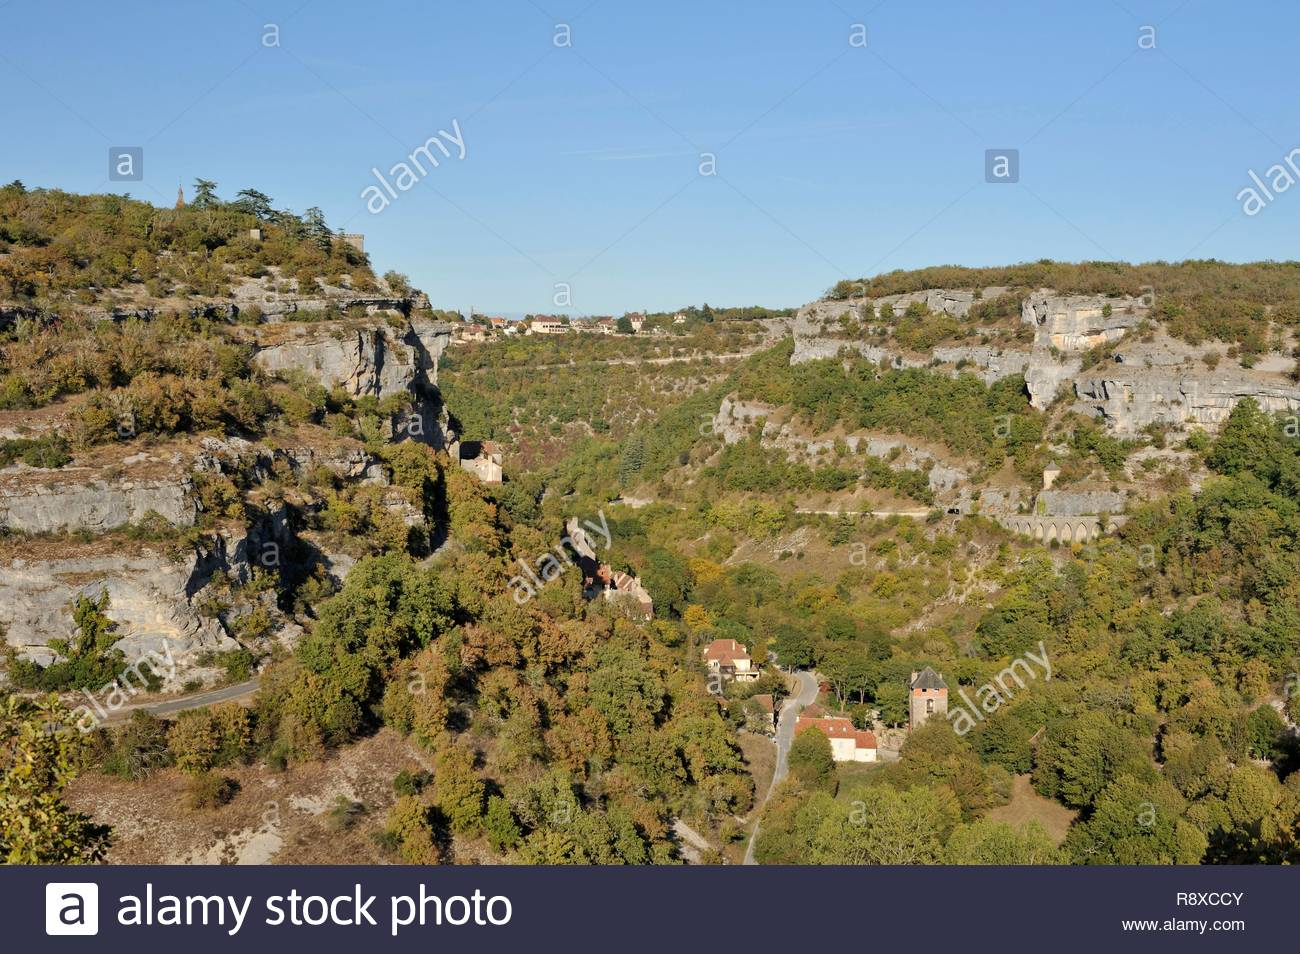 France, Lot, Haut Quercy, Rocamadour, medieval religious city with its sanctuaries overlooking the Canyon of Alzouet and step of the road to Santiago de Compostela, seen from the west - Stock Image